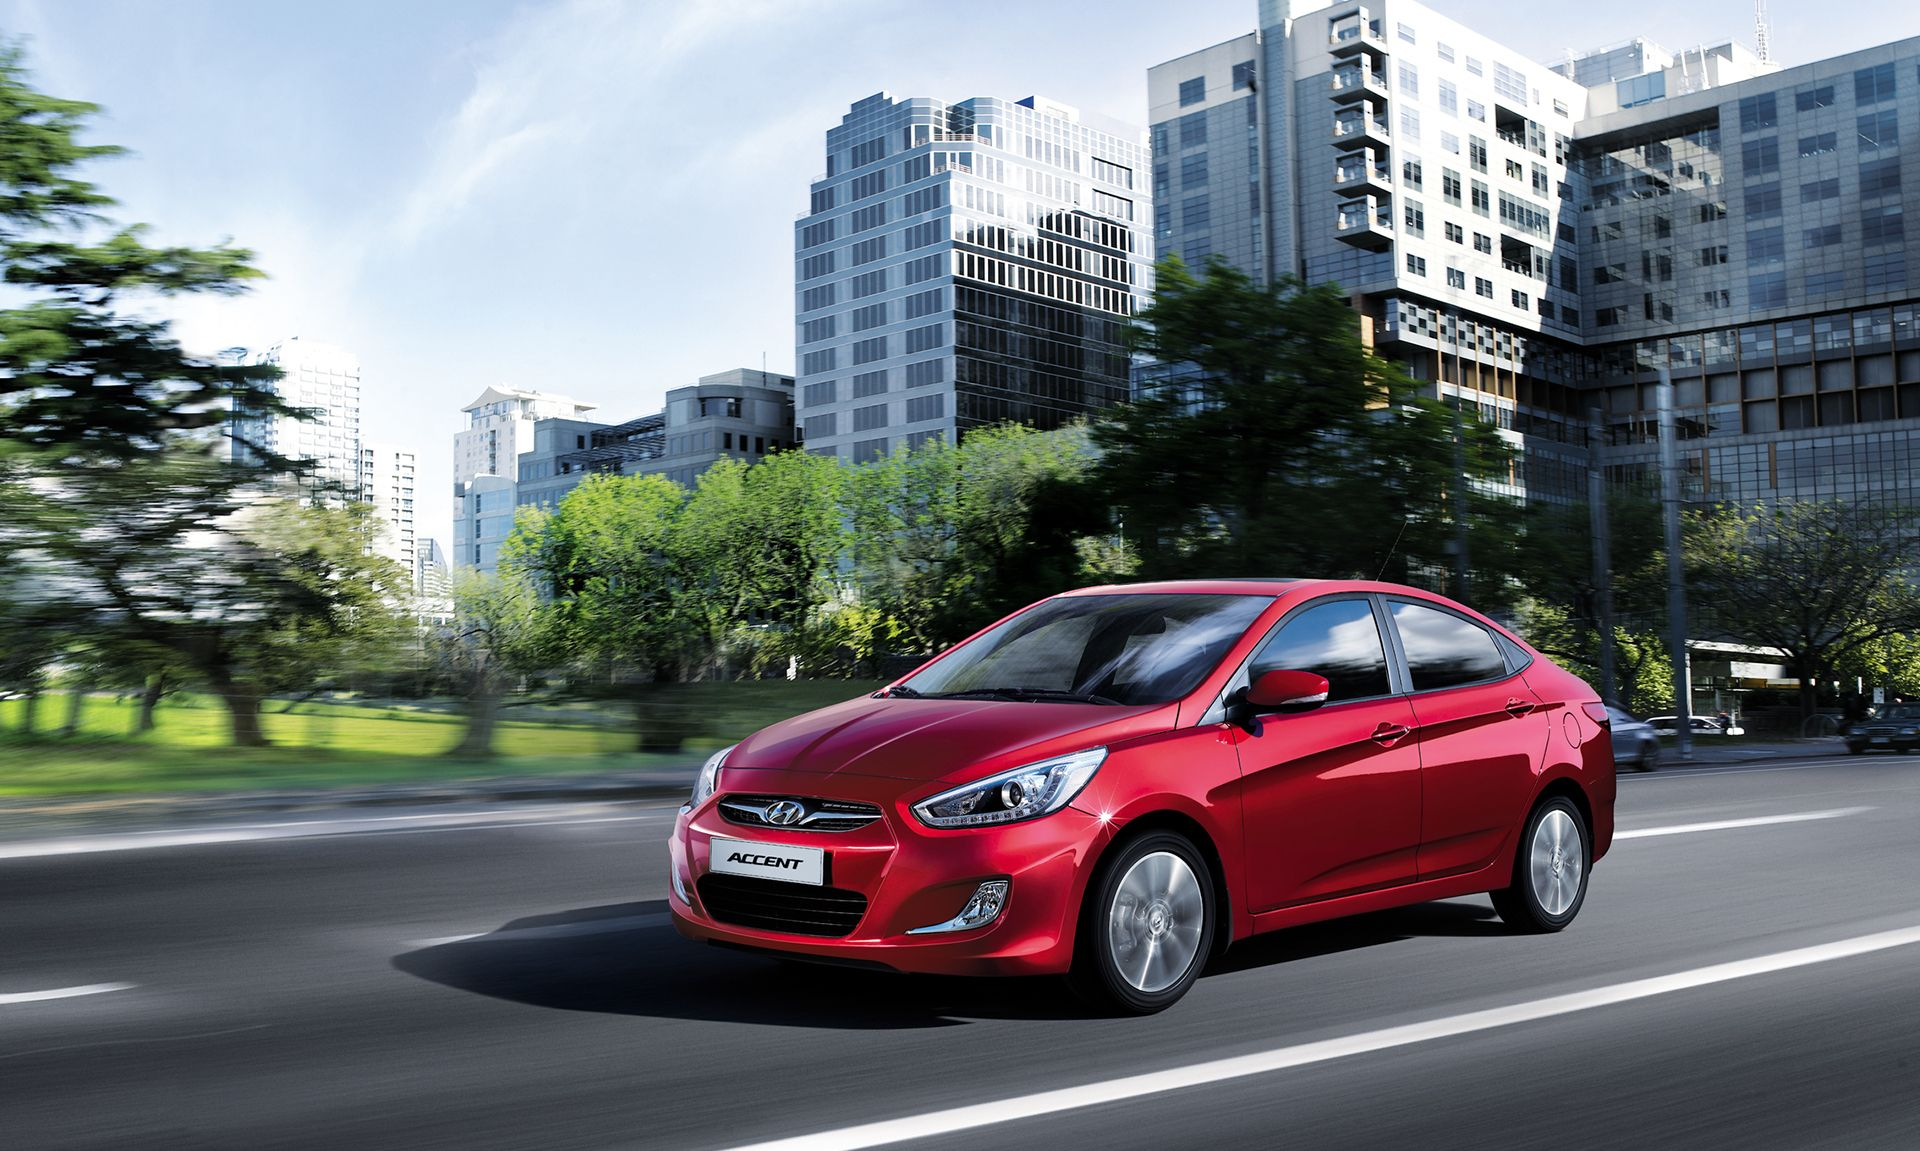 The Face Lifted Hyundai Accent Available At Mynm Hyundai Accent New Hyundai Hyundai